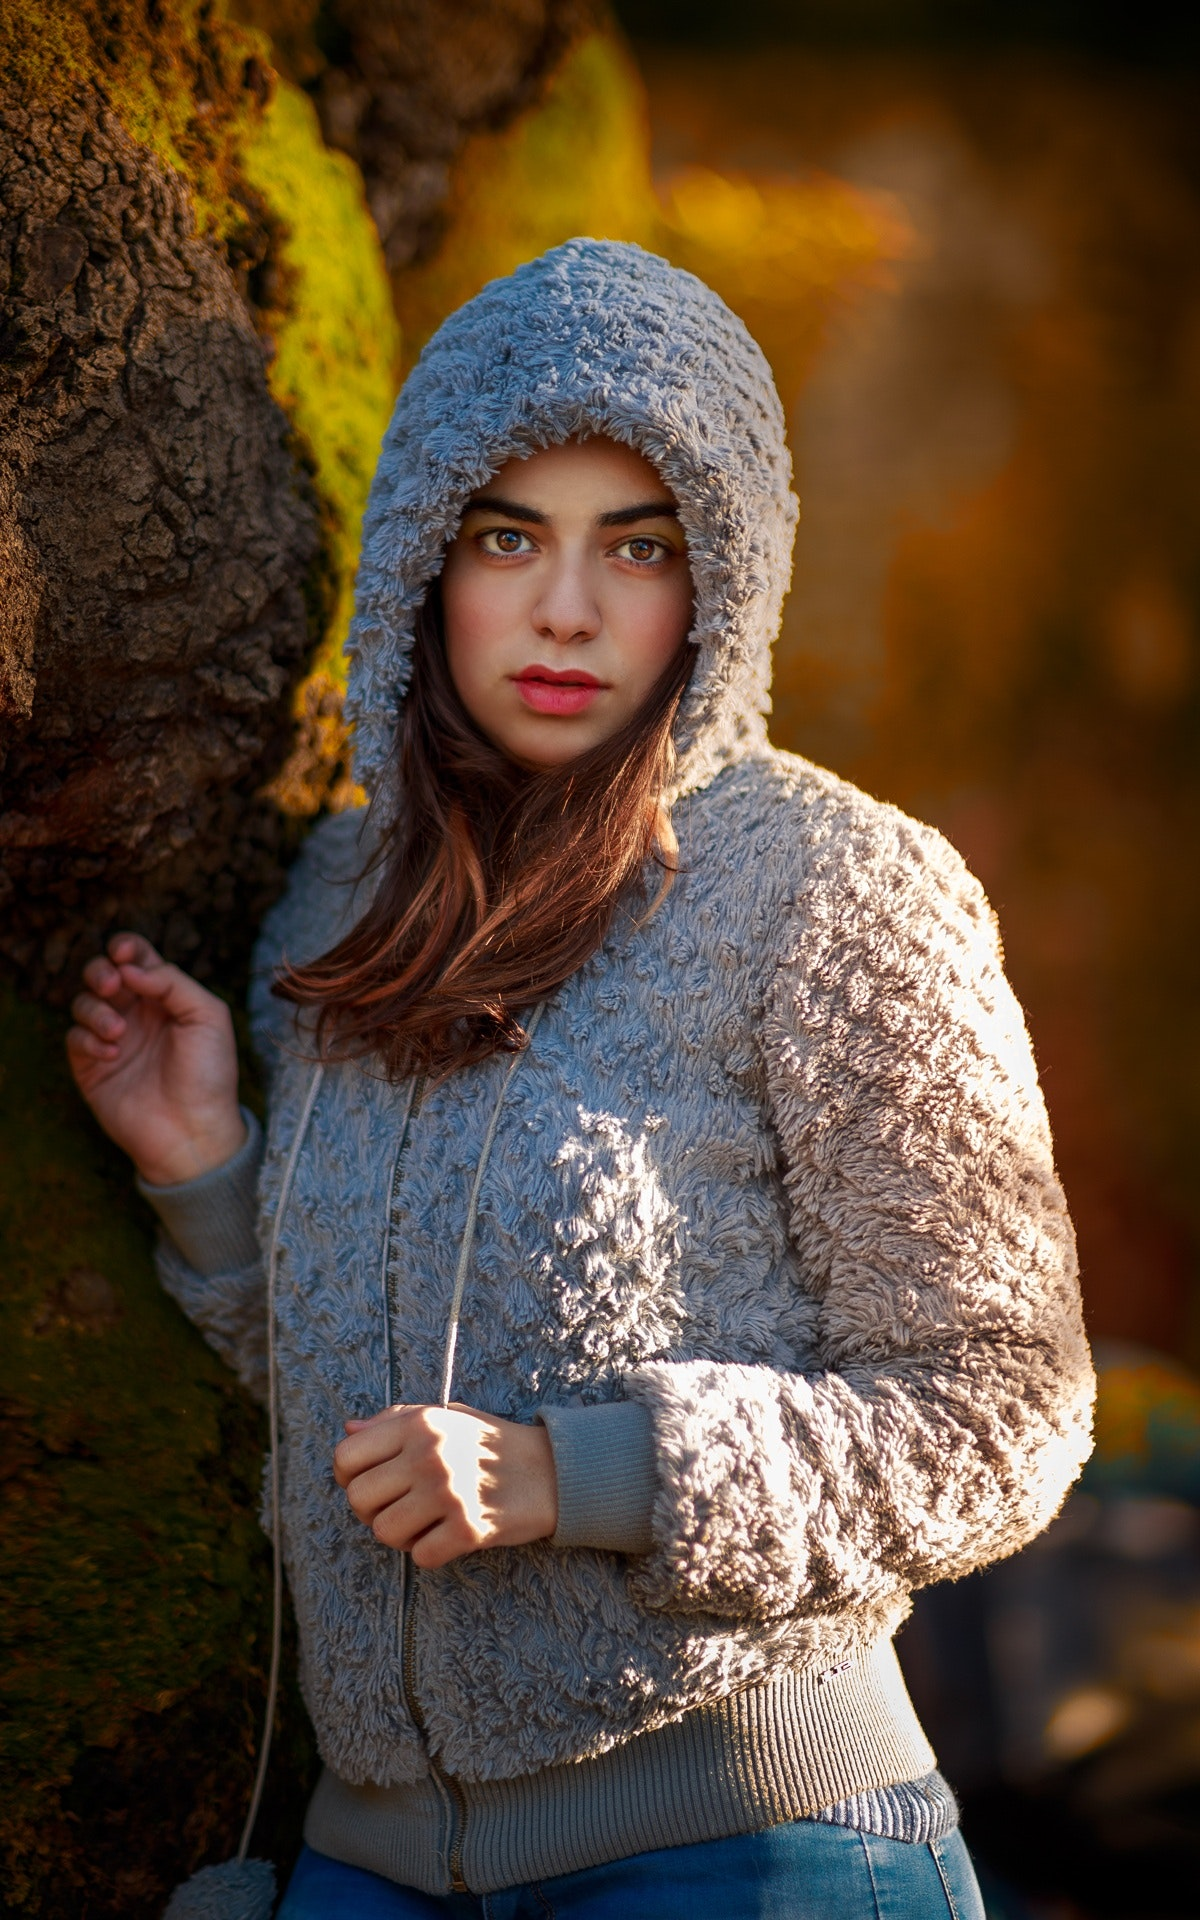 Woman Wearing Gray Wool Hoodie, Brunette, Fashion, Forest, Girl, HQ Photo